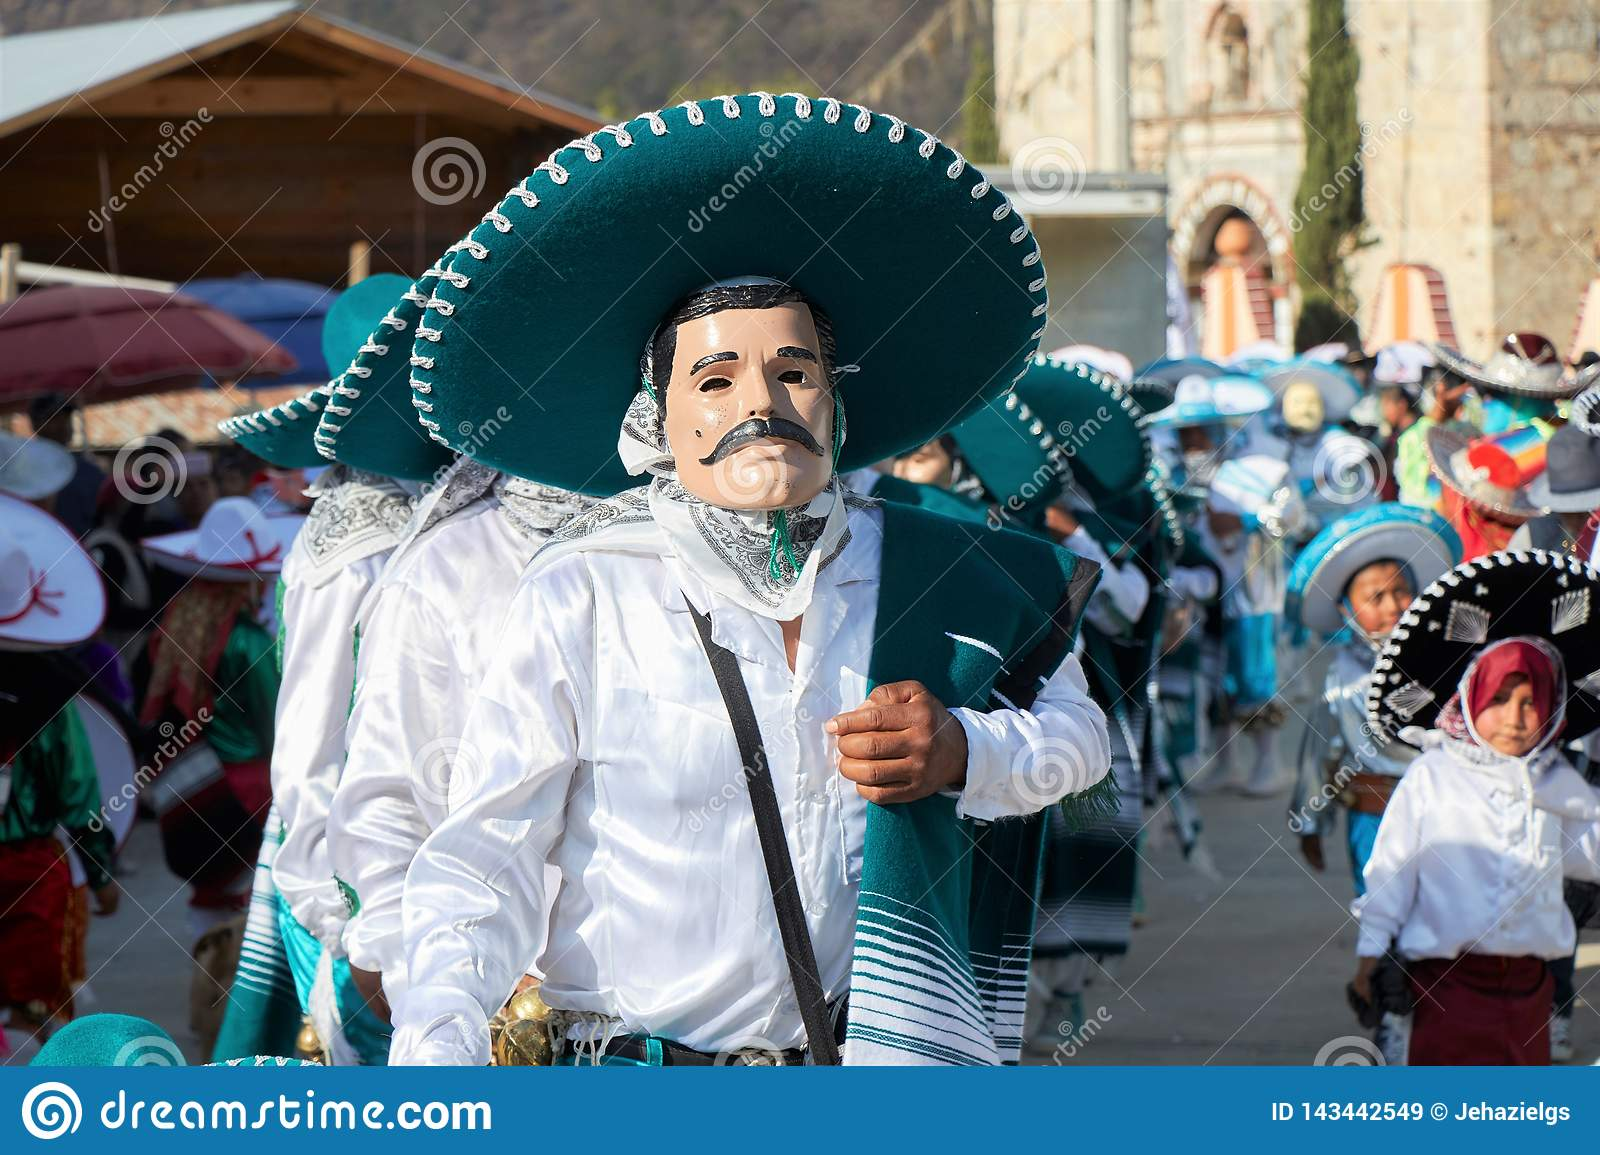 Person wearing mask and disguised as mariachi with dark green hat during a